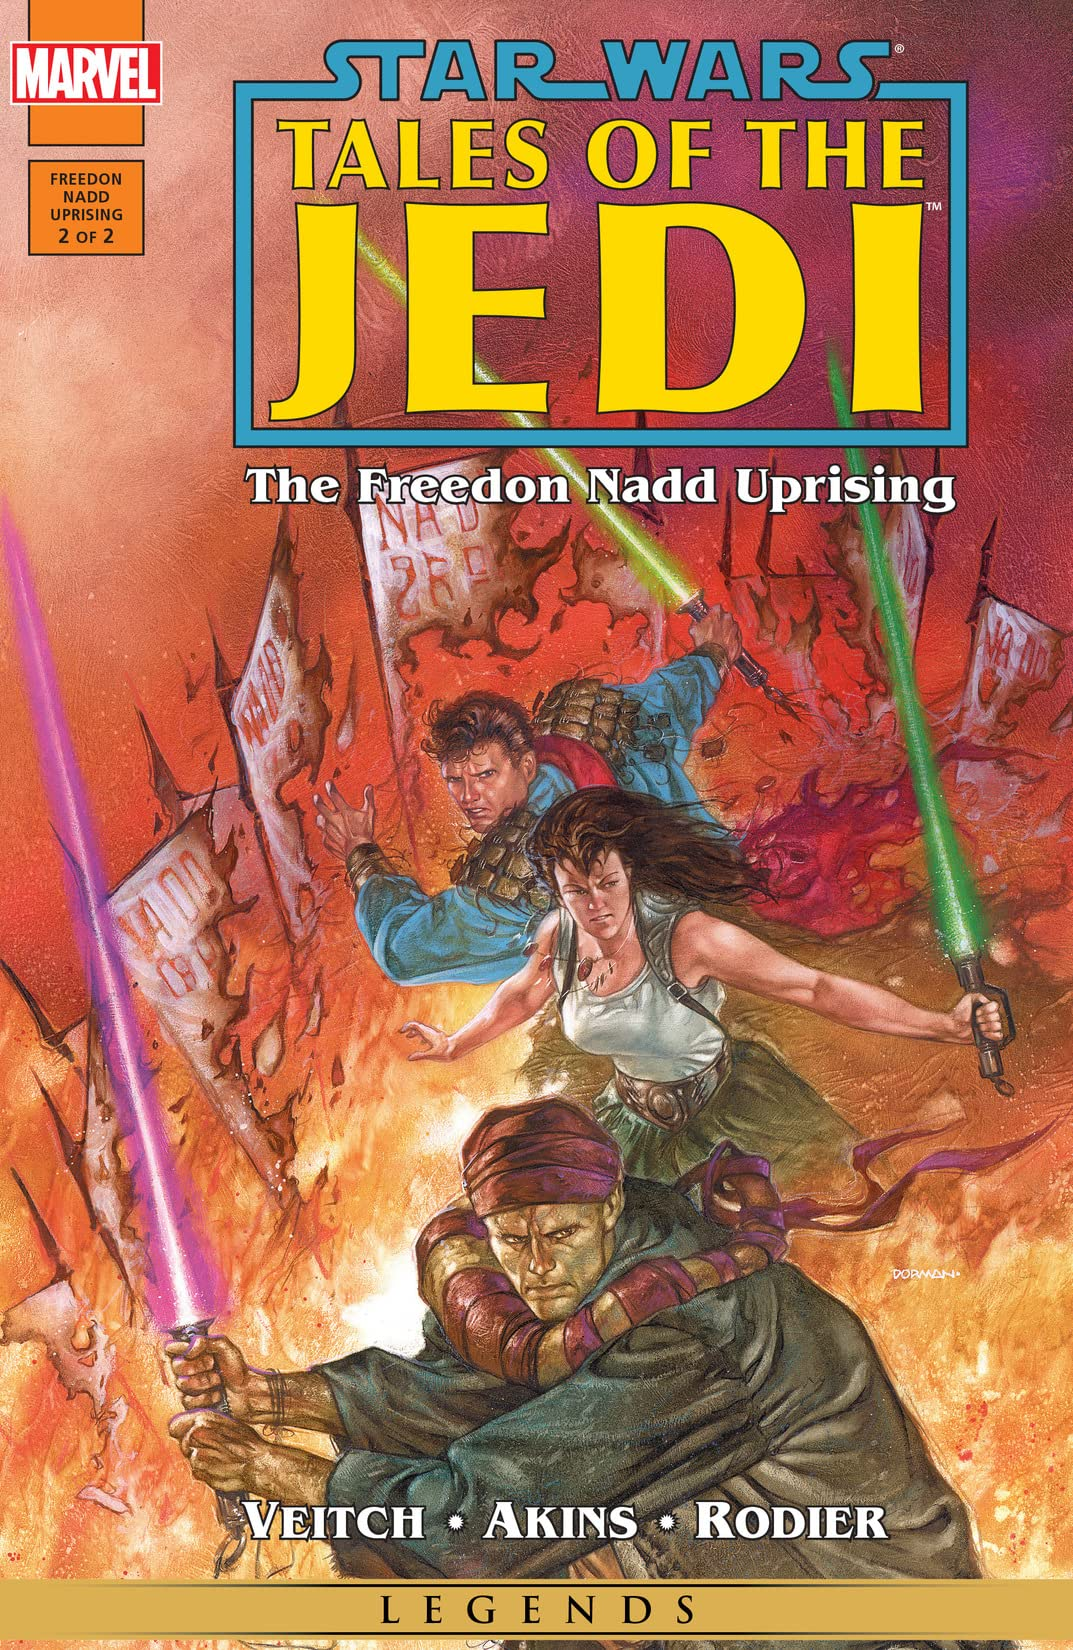 Star Wars: Tales of the Jedi - The Freedon Nadd Uprising (1994) #2 (of 2)